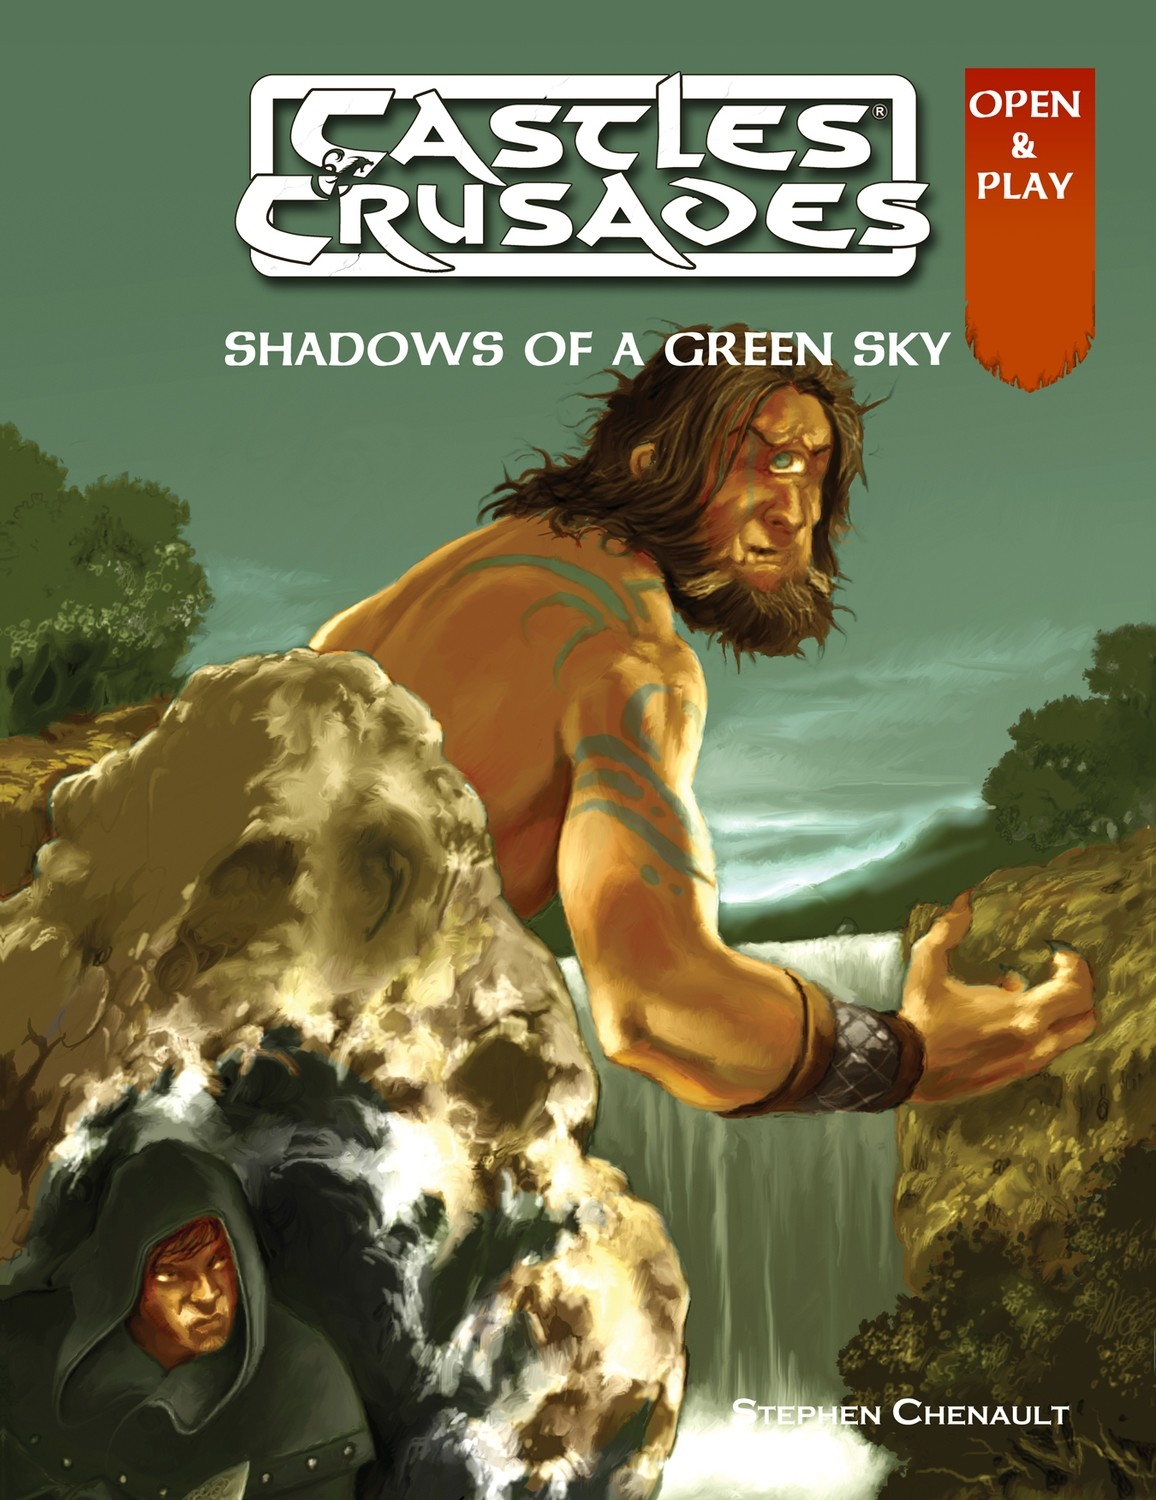 Castles & Crusades Shadows of a Green Sky Digital